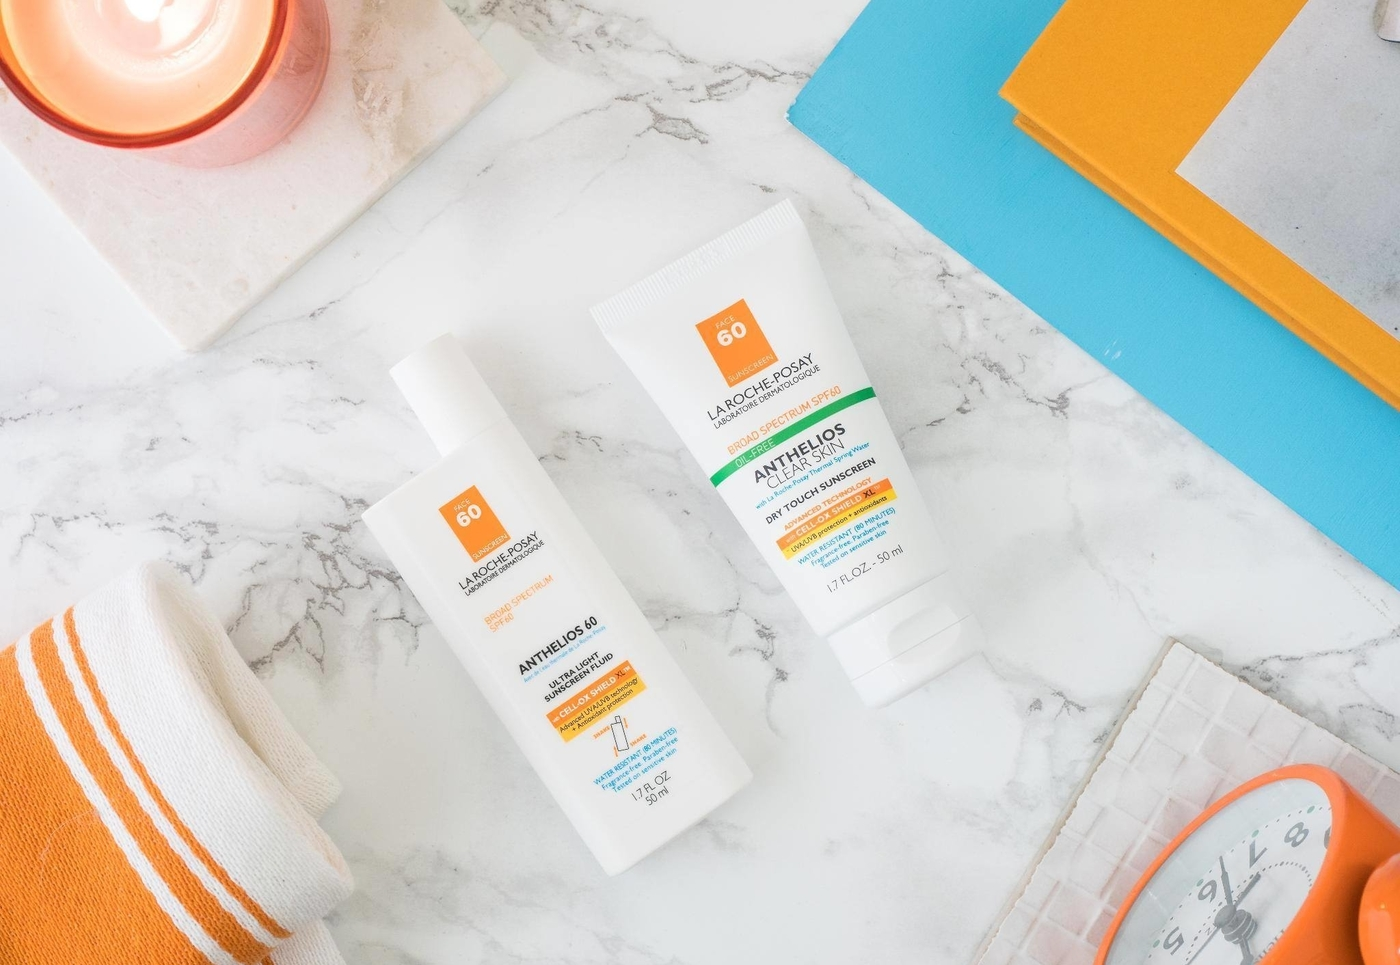 Ultra-Light Mineral Sunscreen by La Roche-Posay